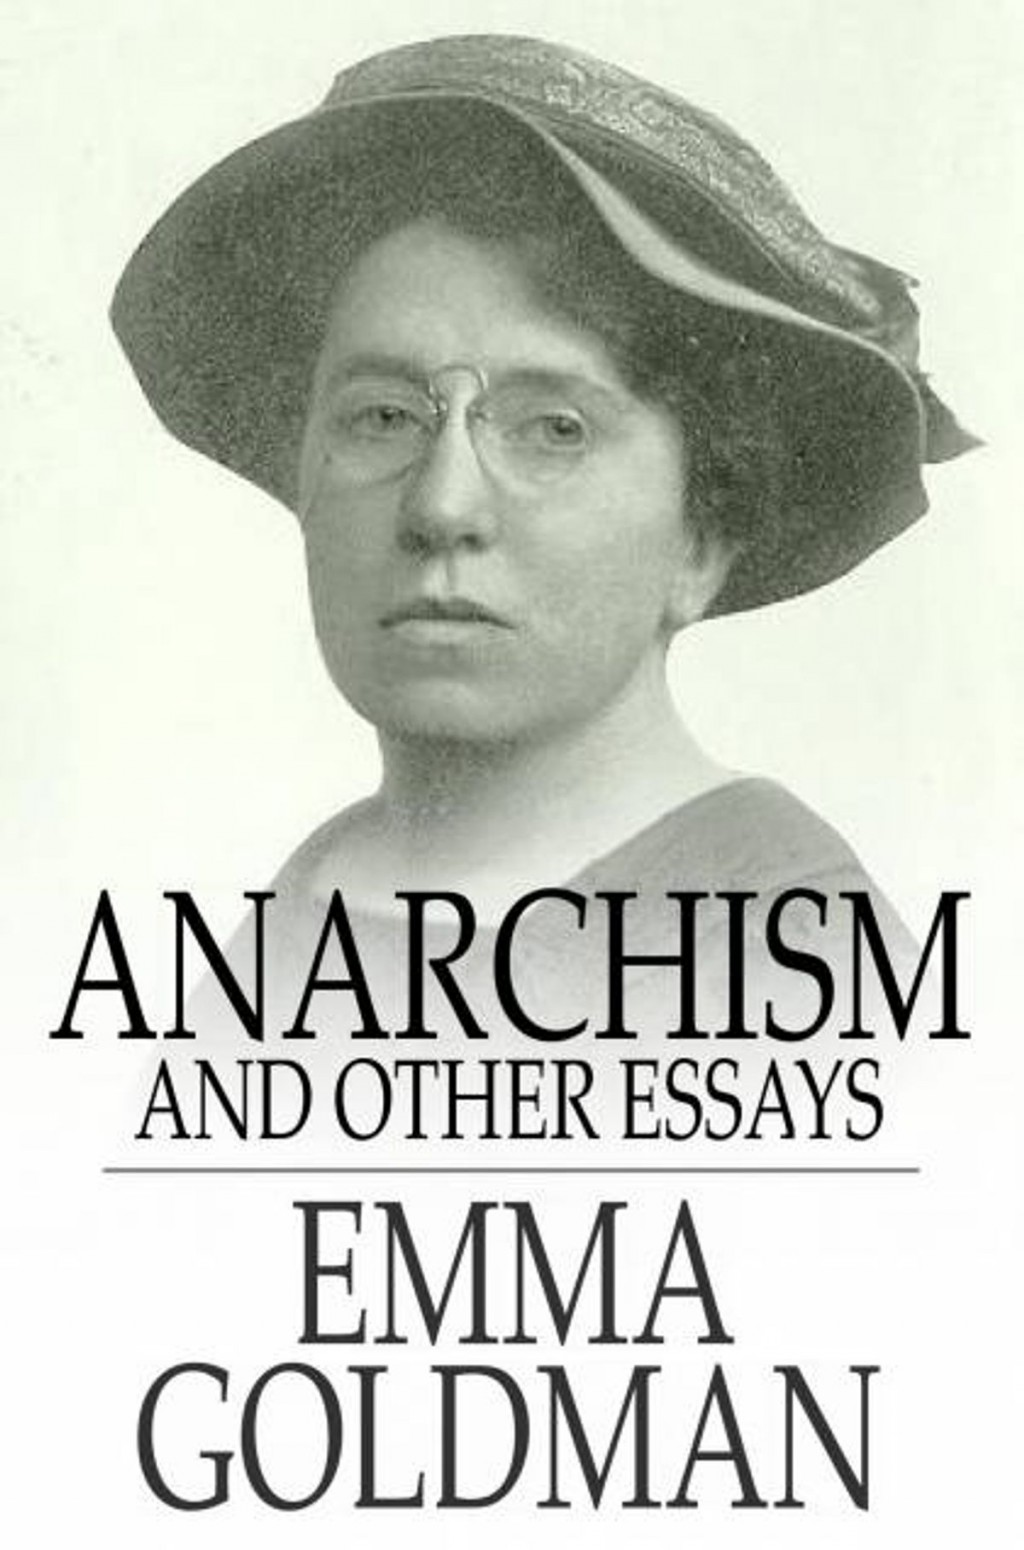 009 Anarchism And Other Essays Essay Incredible Emma Goldman Summary Pdf Large